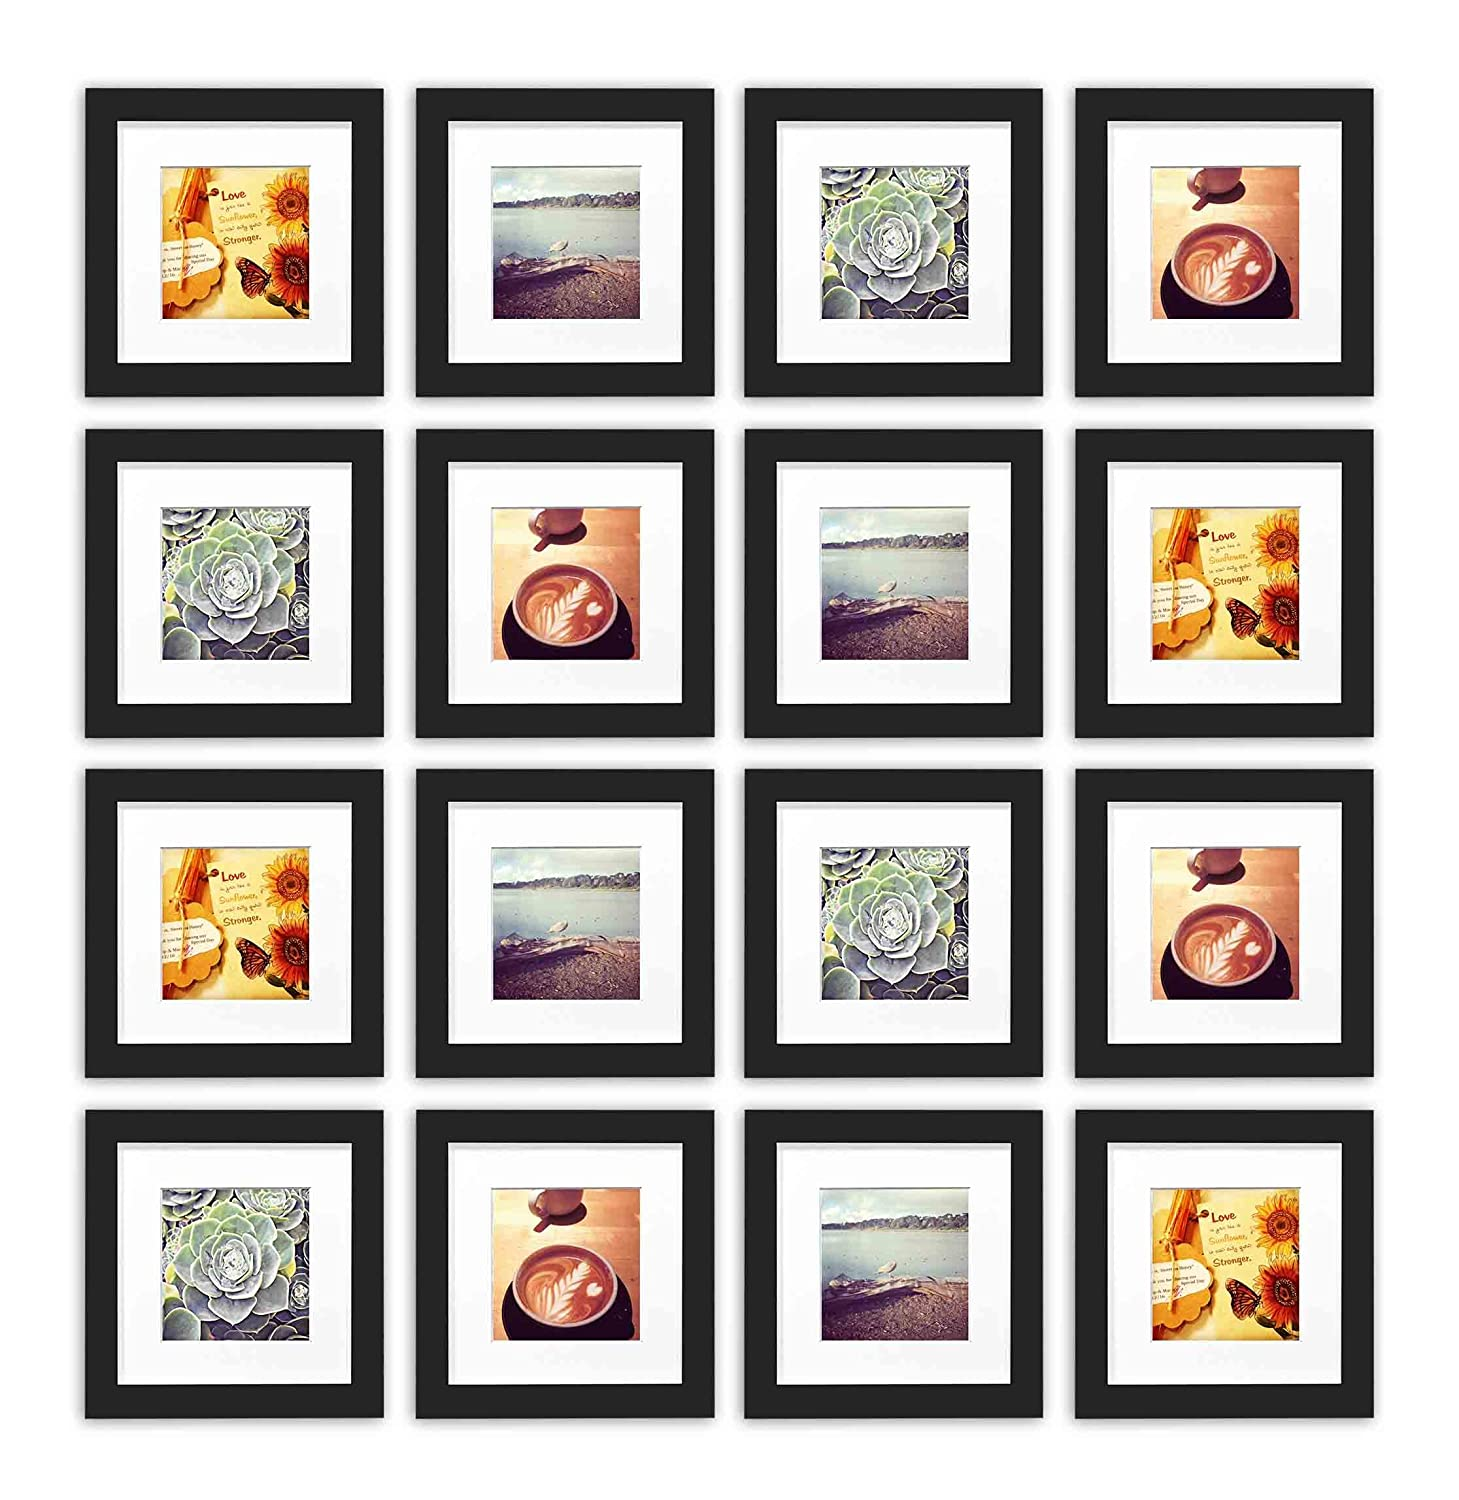 White Smartphone Instagram Frames Collection 6x6-inch Square Photo Wood Frames with White Photo Mat /& Real Glass for 4x4 Photo Golden State Art Set of 16